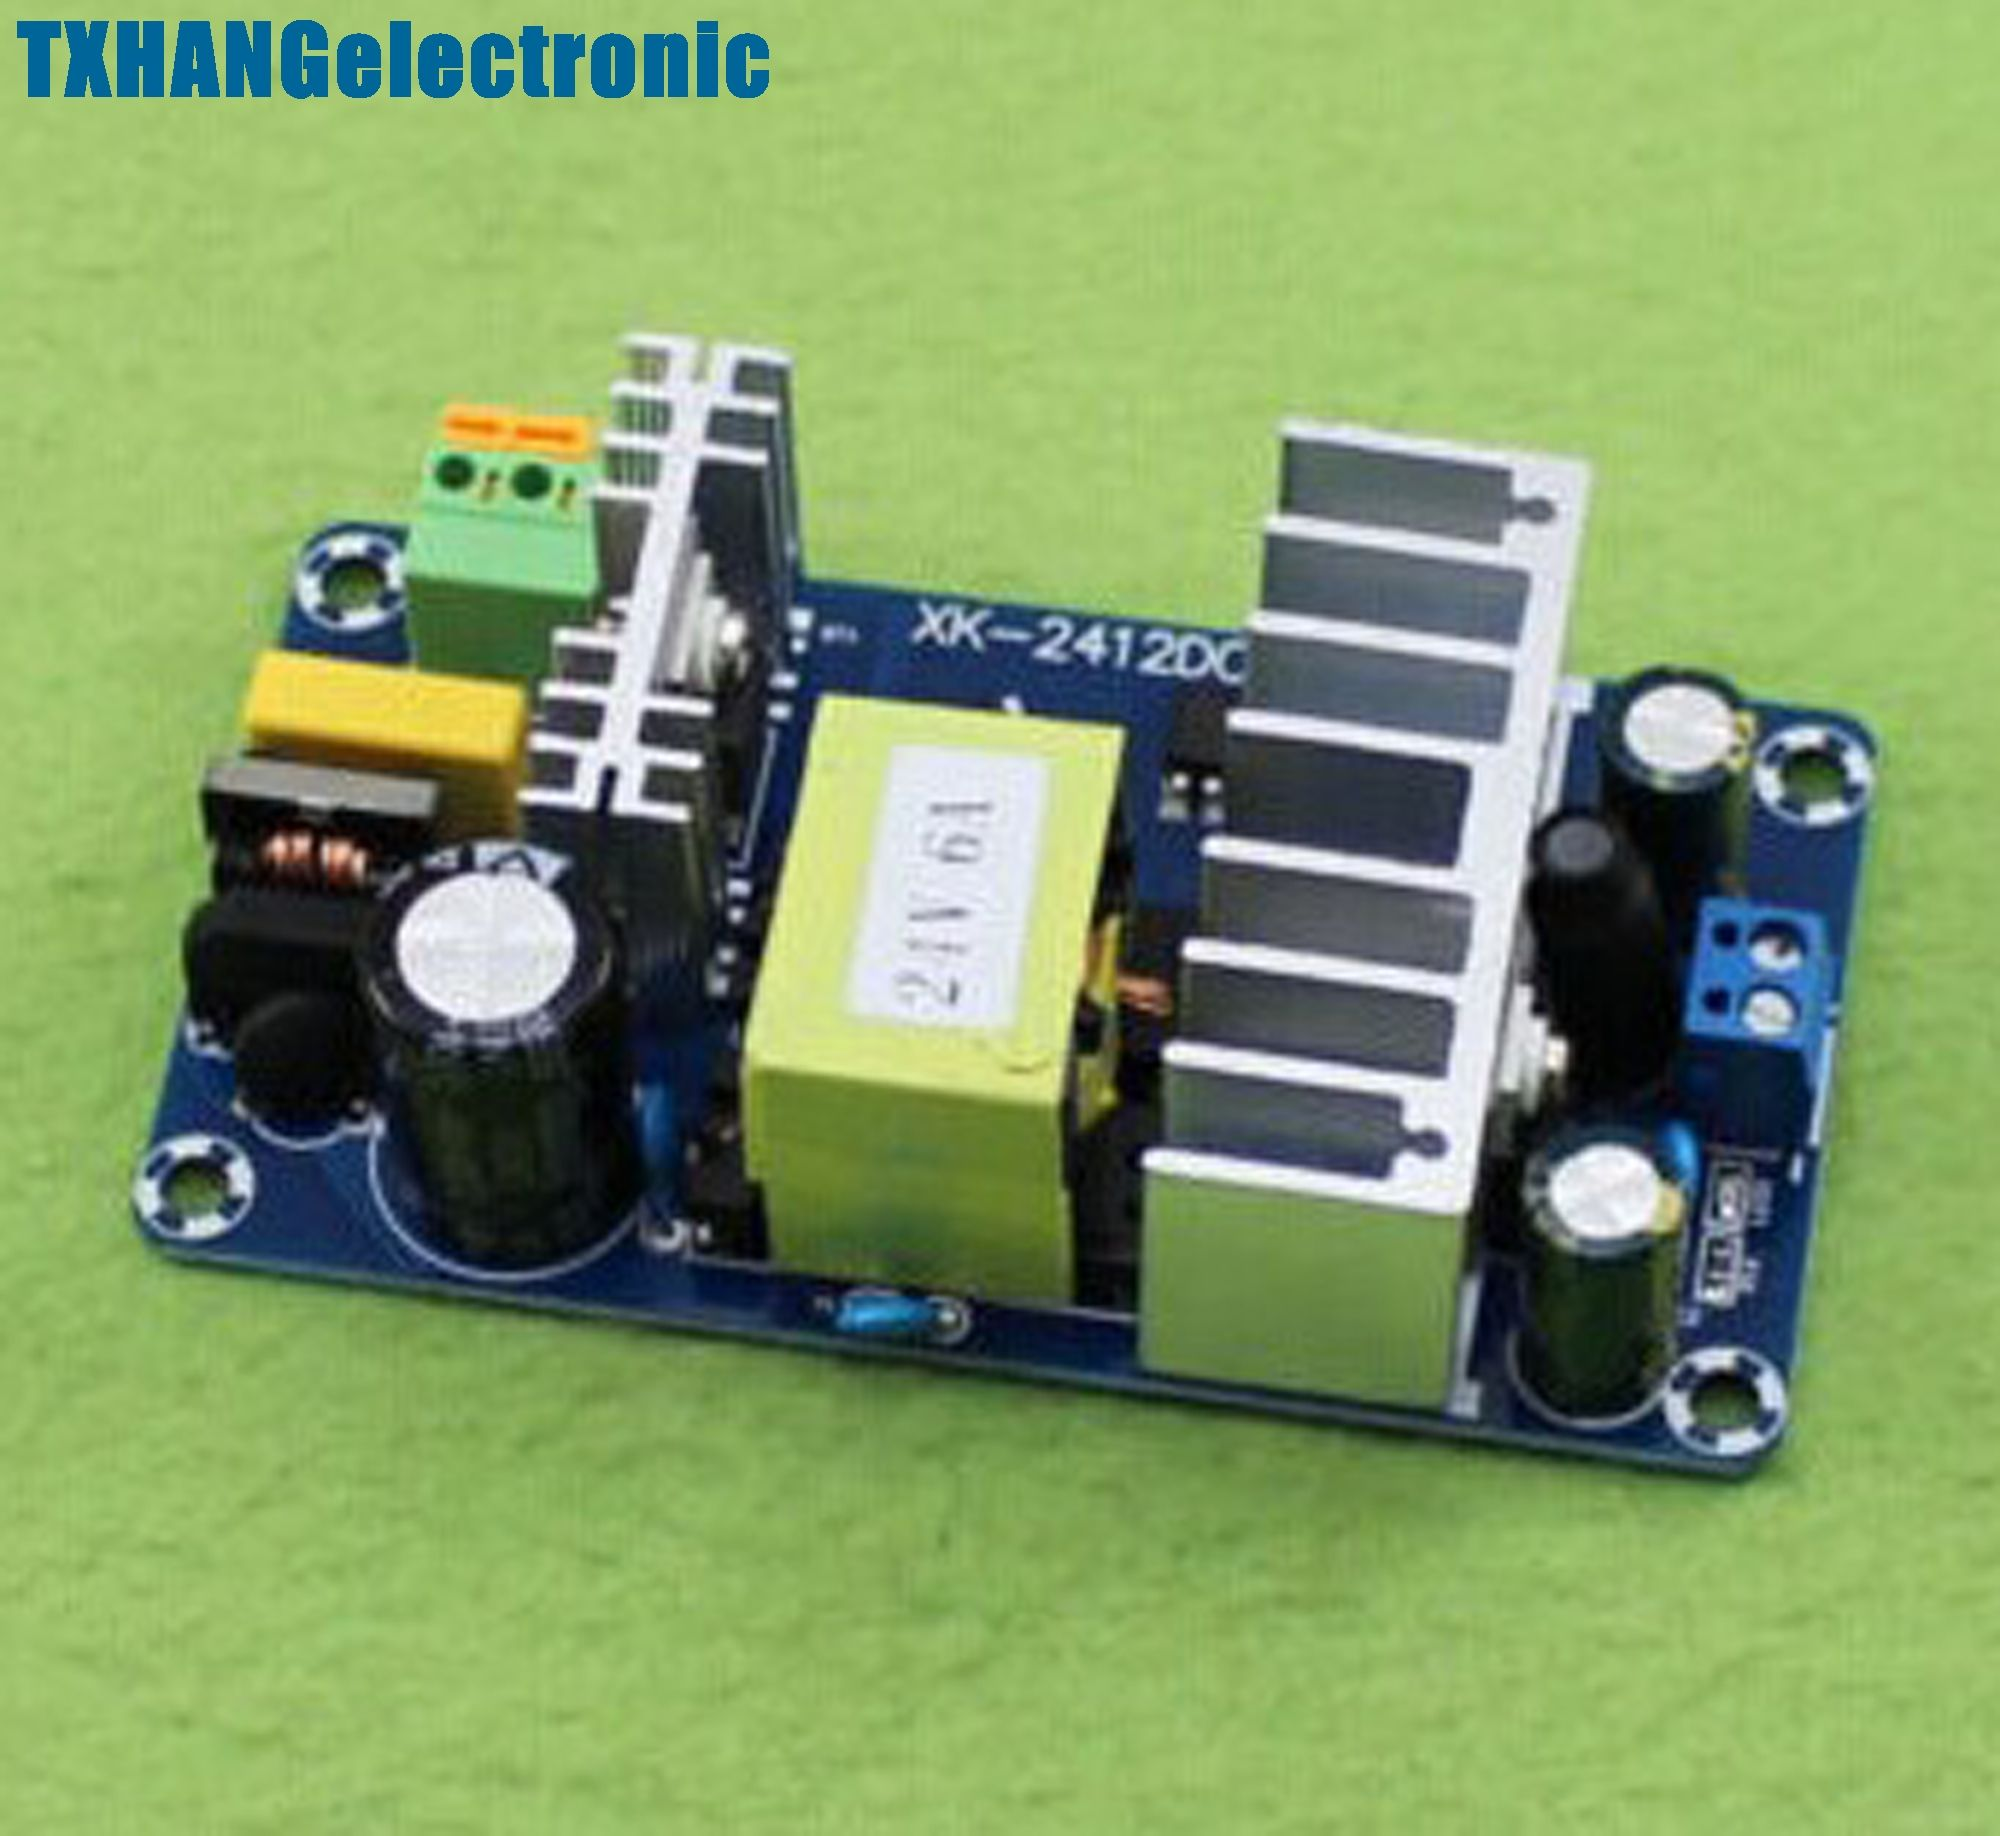 AC 85-265V to DC 24V 4A-6A Switching Power Supply Board Power Supply 100W Module